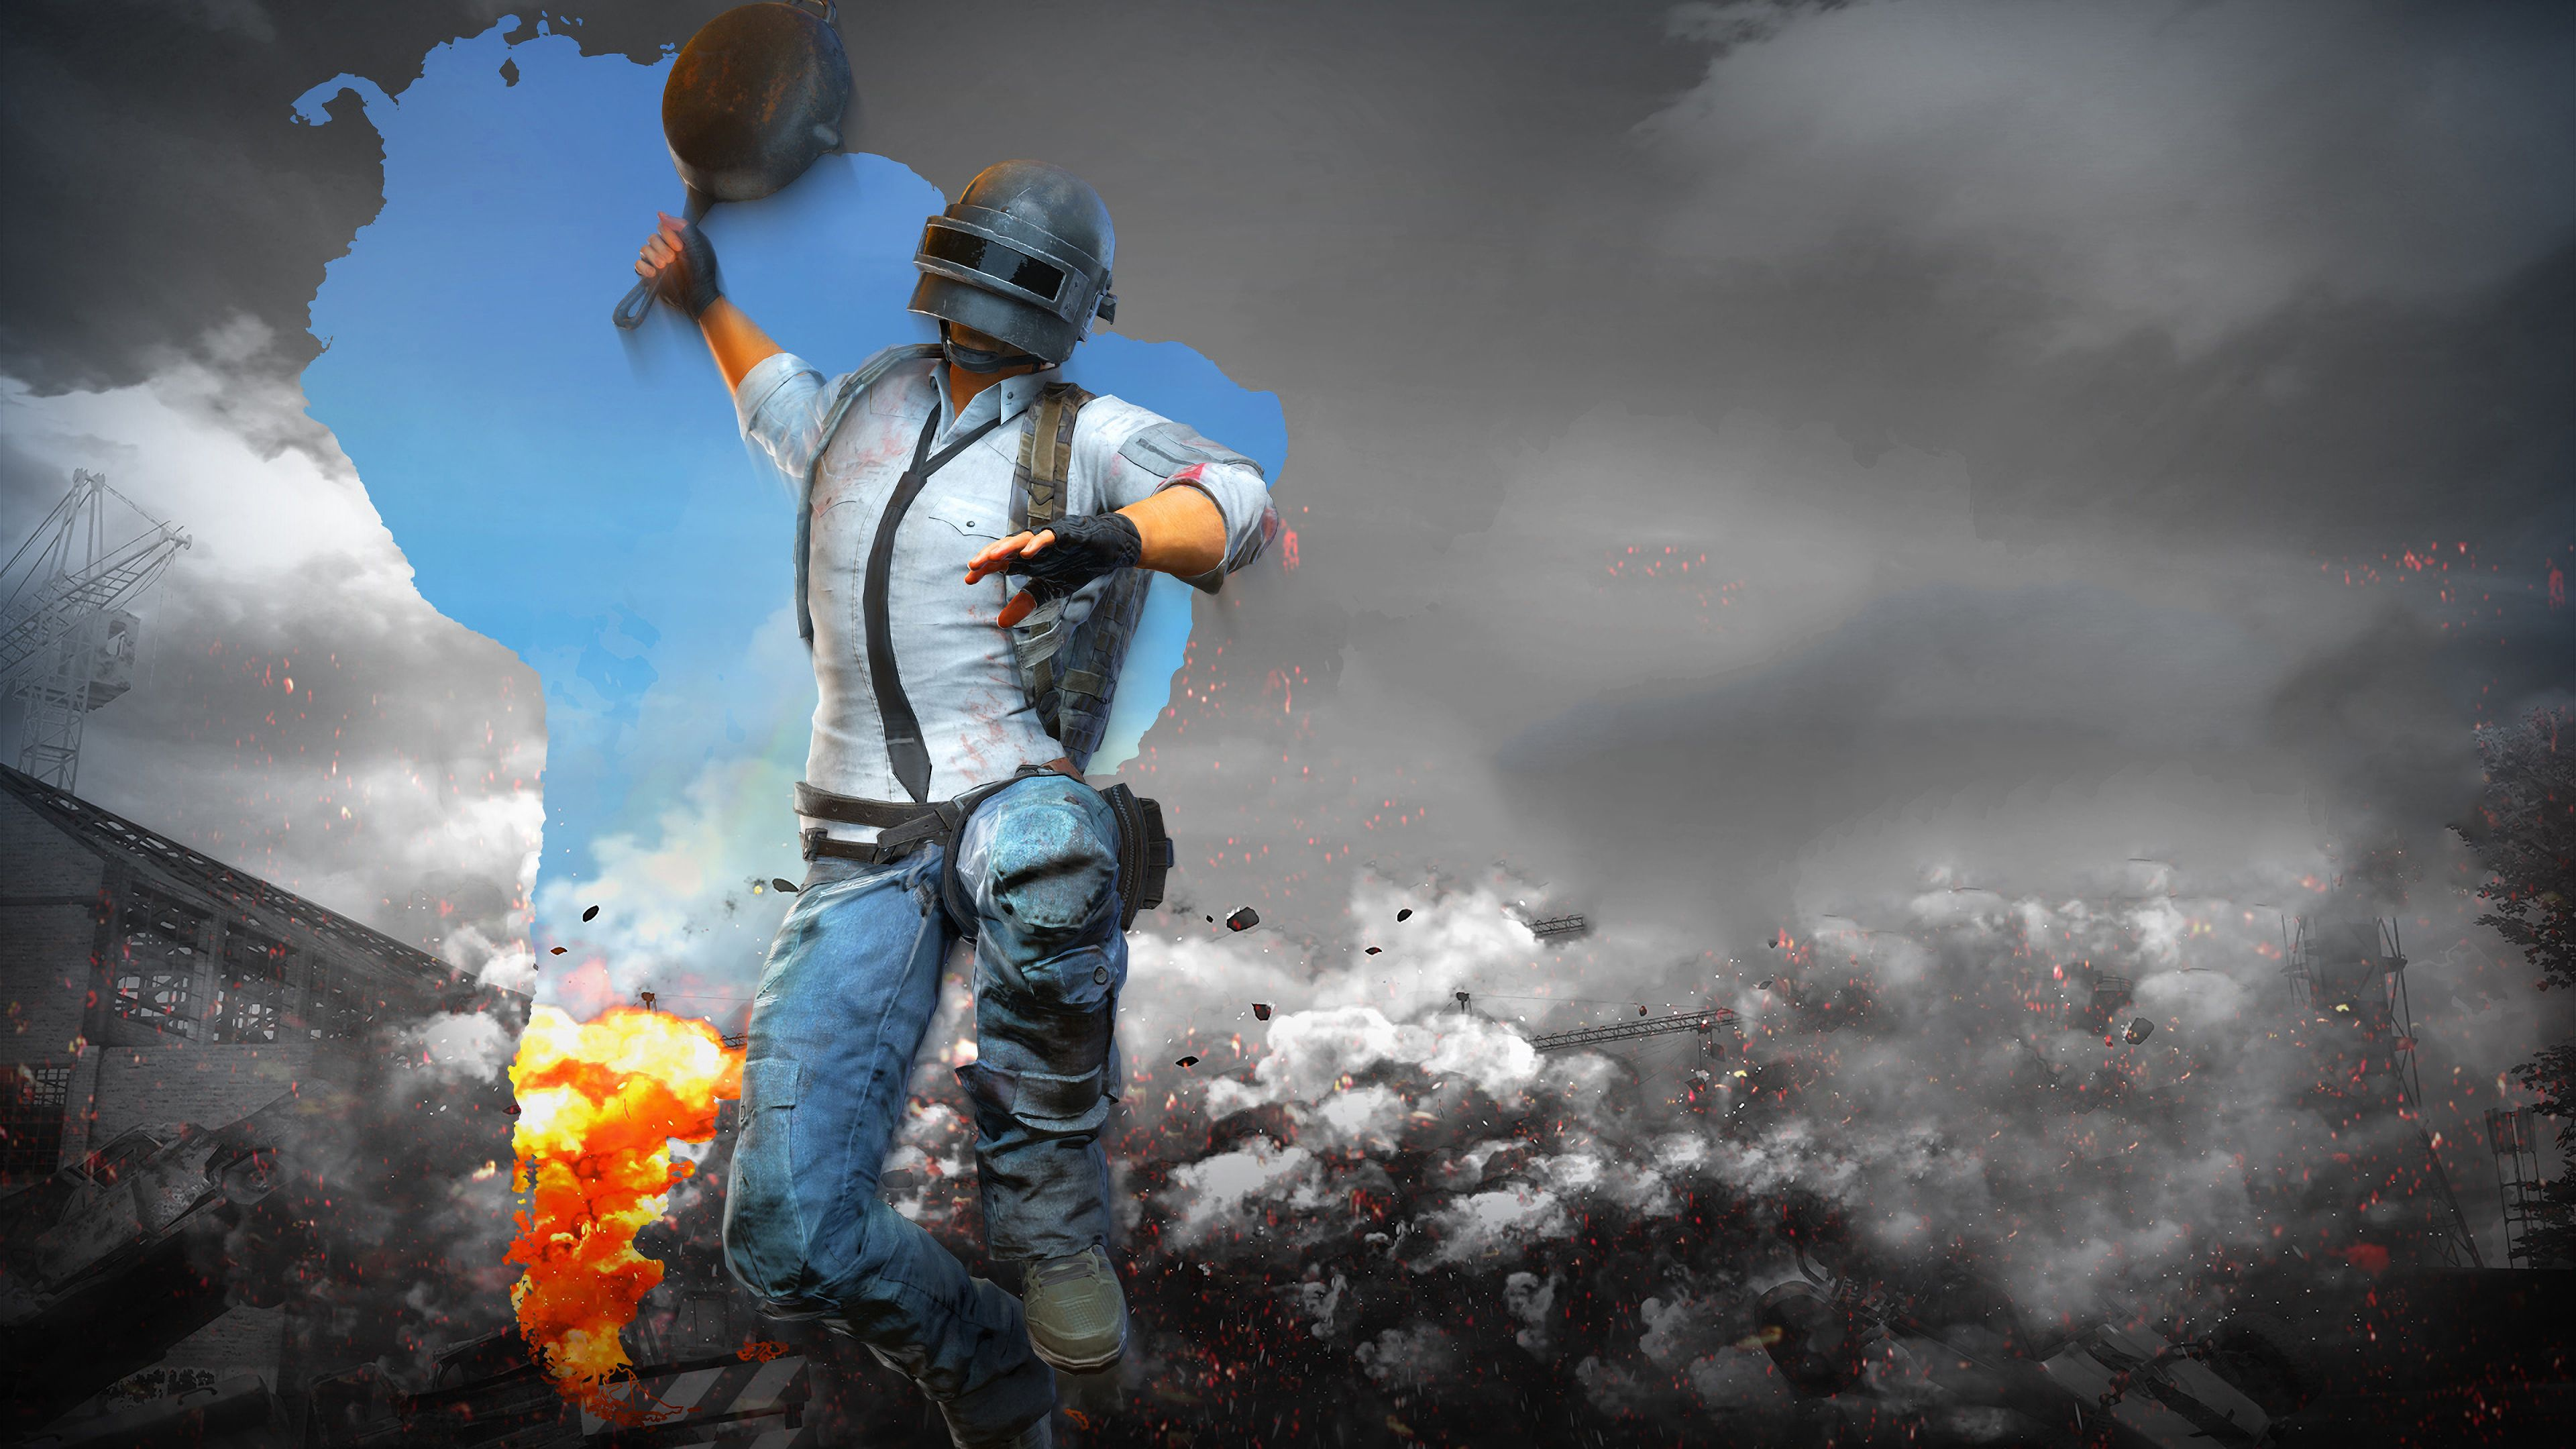 3840x2160 Pubg Game Helmet Guy 4k 4k Hd 4k Wallpapers: PUBG 4K Gaming Wallpapers